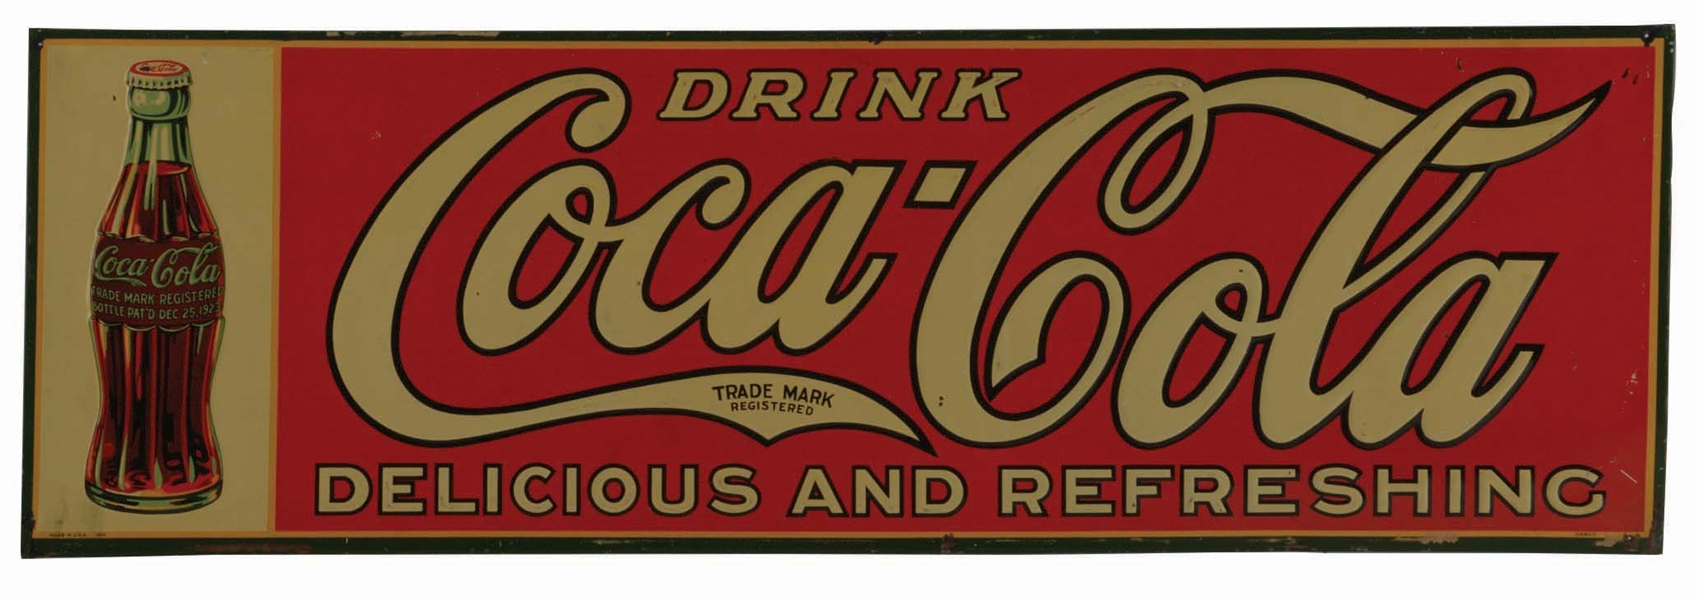 1929 EMBOSSED TIN COCA-COLA ADVERTISING SIGN.